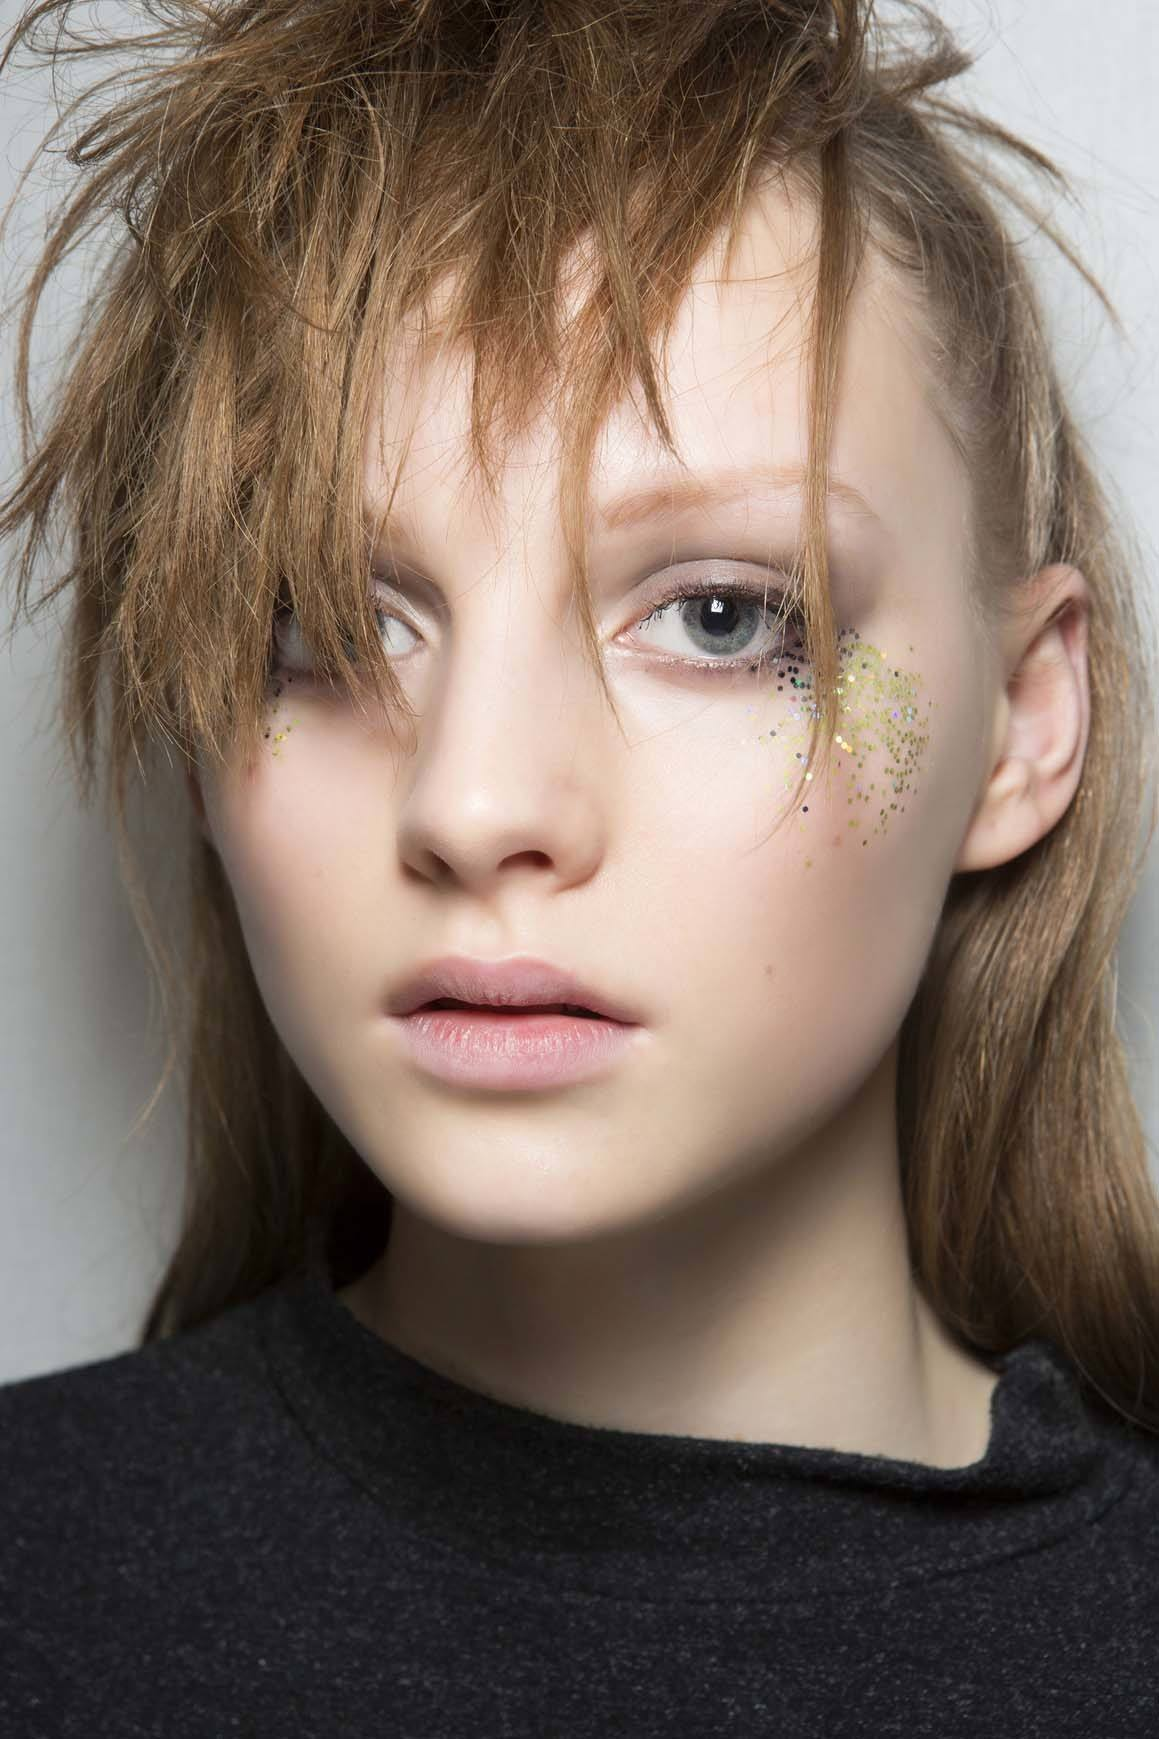 Style Layered Hair By Adding In Feathery Bangs